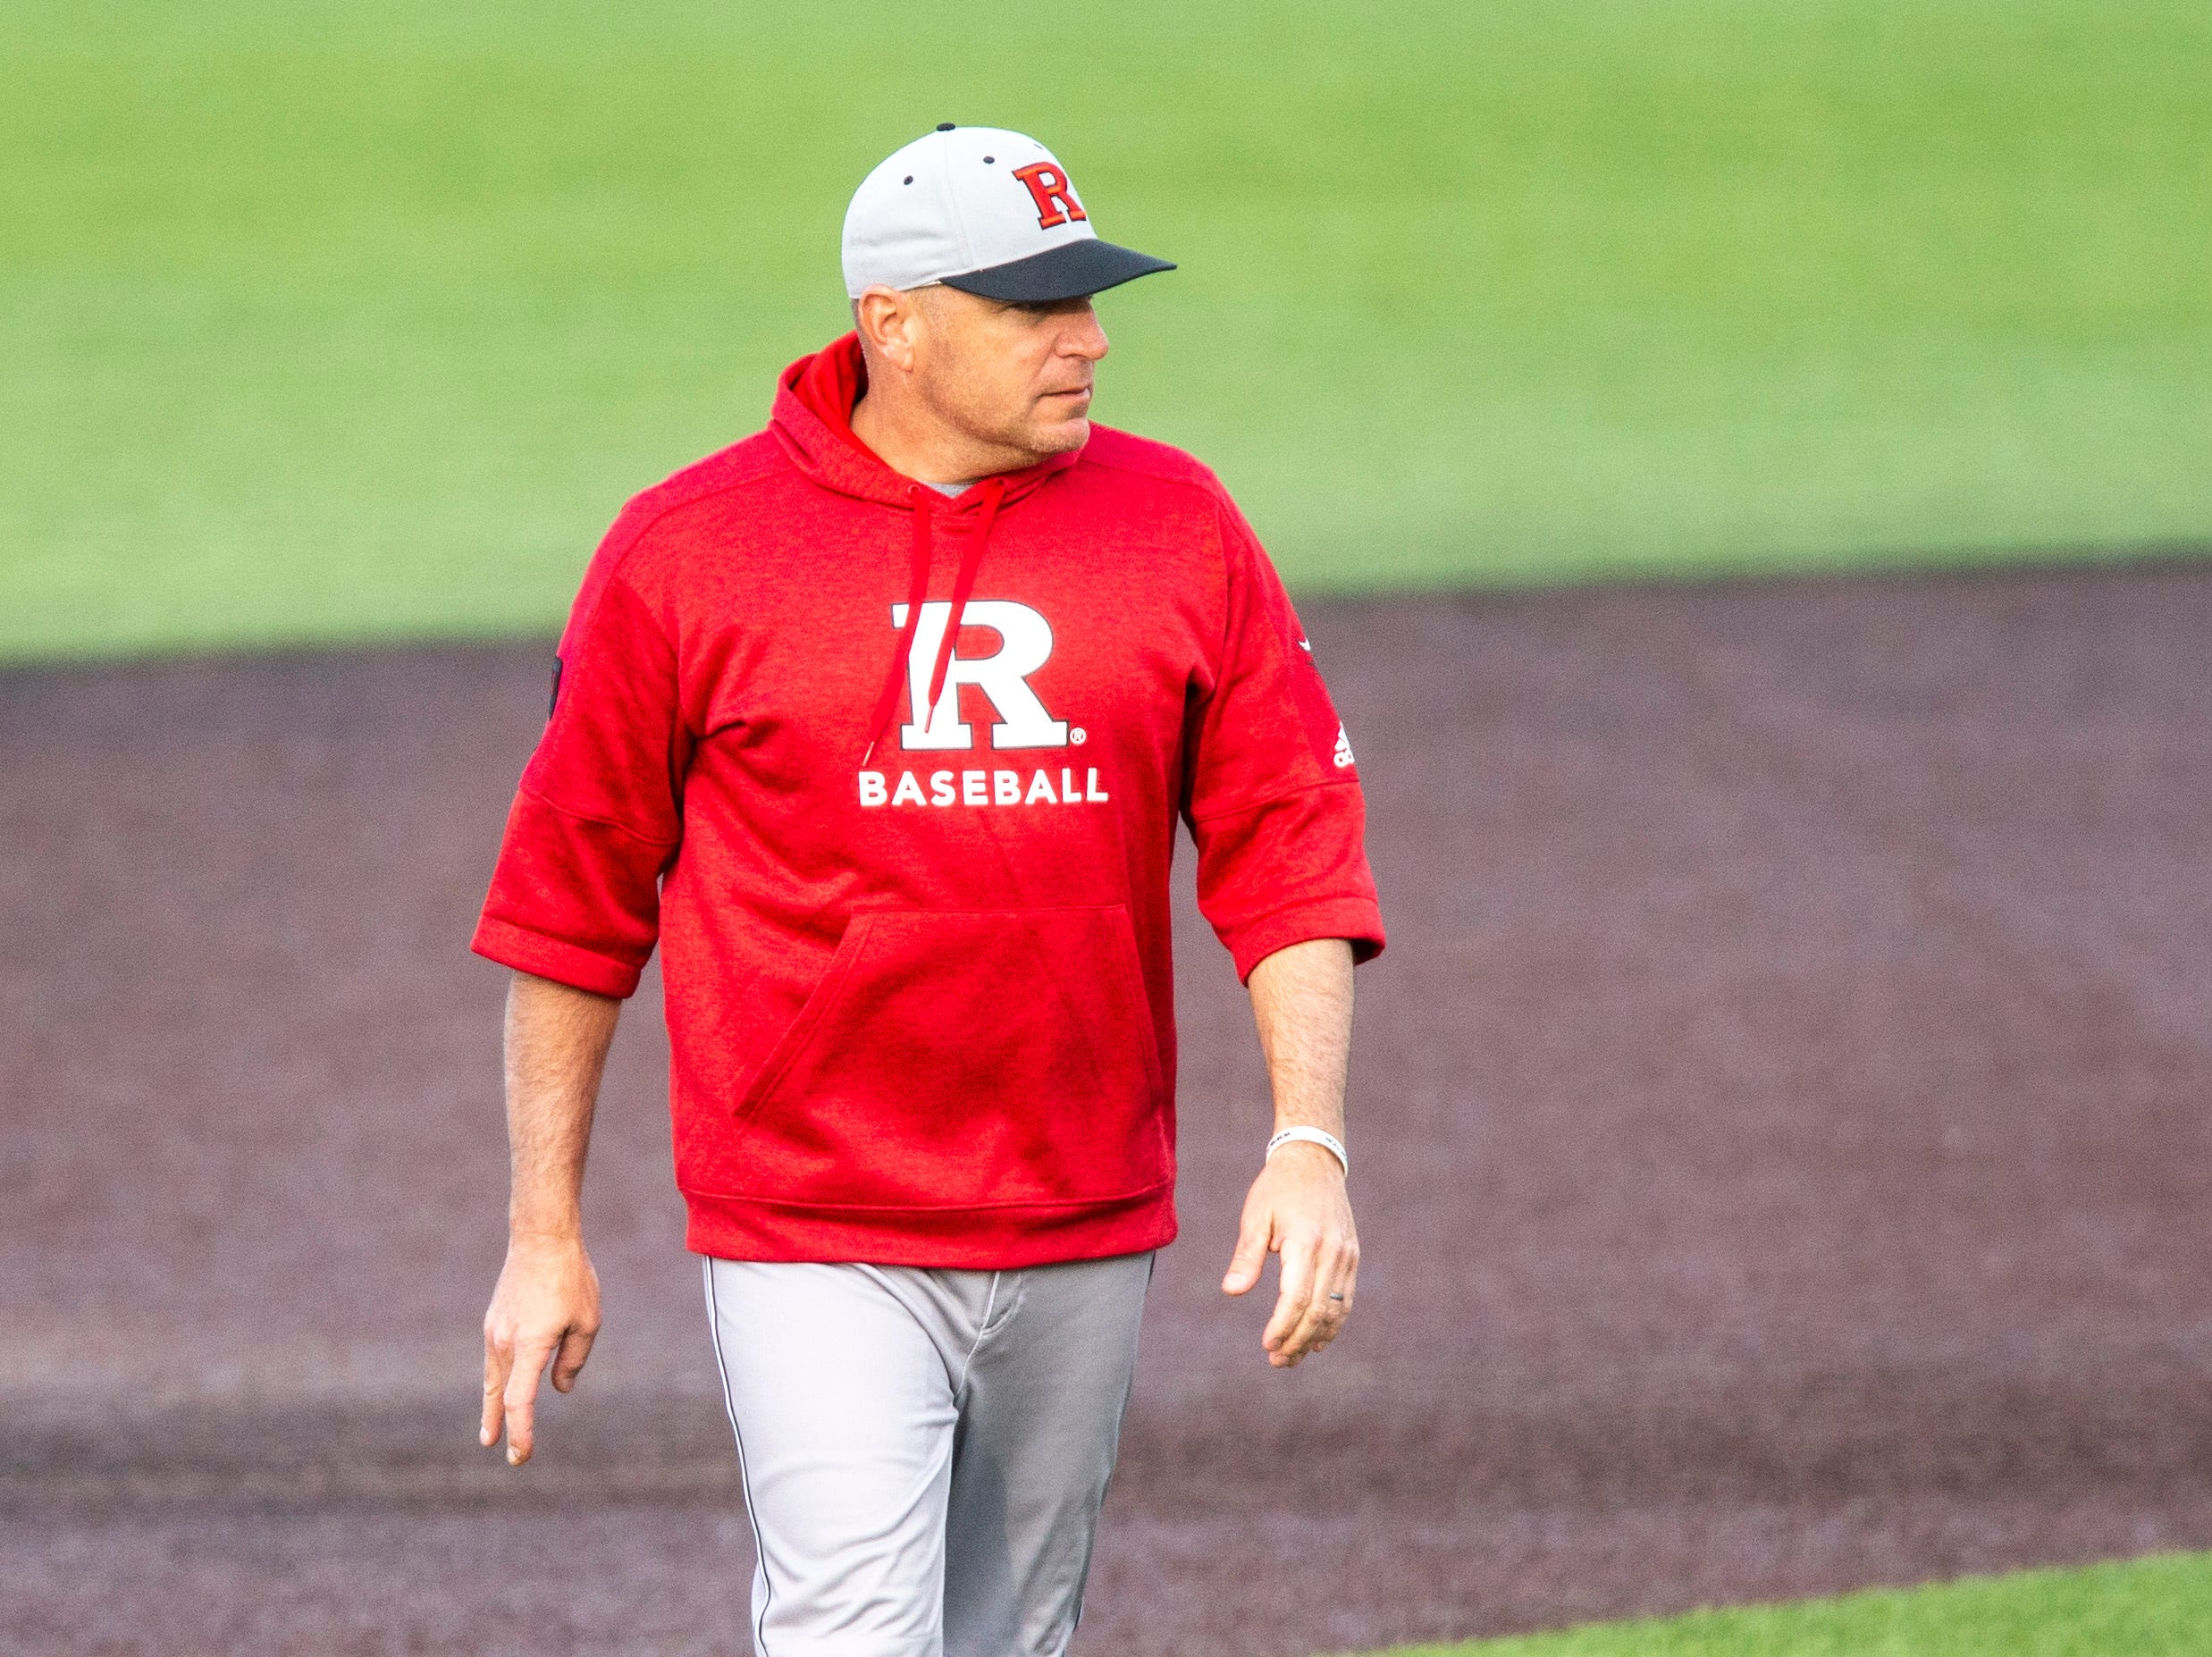 Rutgers head coach Joe Litterio walks back to the dugout during a NCAA Big Ten Conference baseball game on Saturday, April 6, 2019, at Duane Banks Field in Iowa City, Iowa.